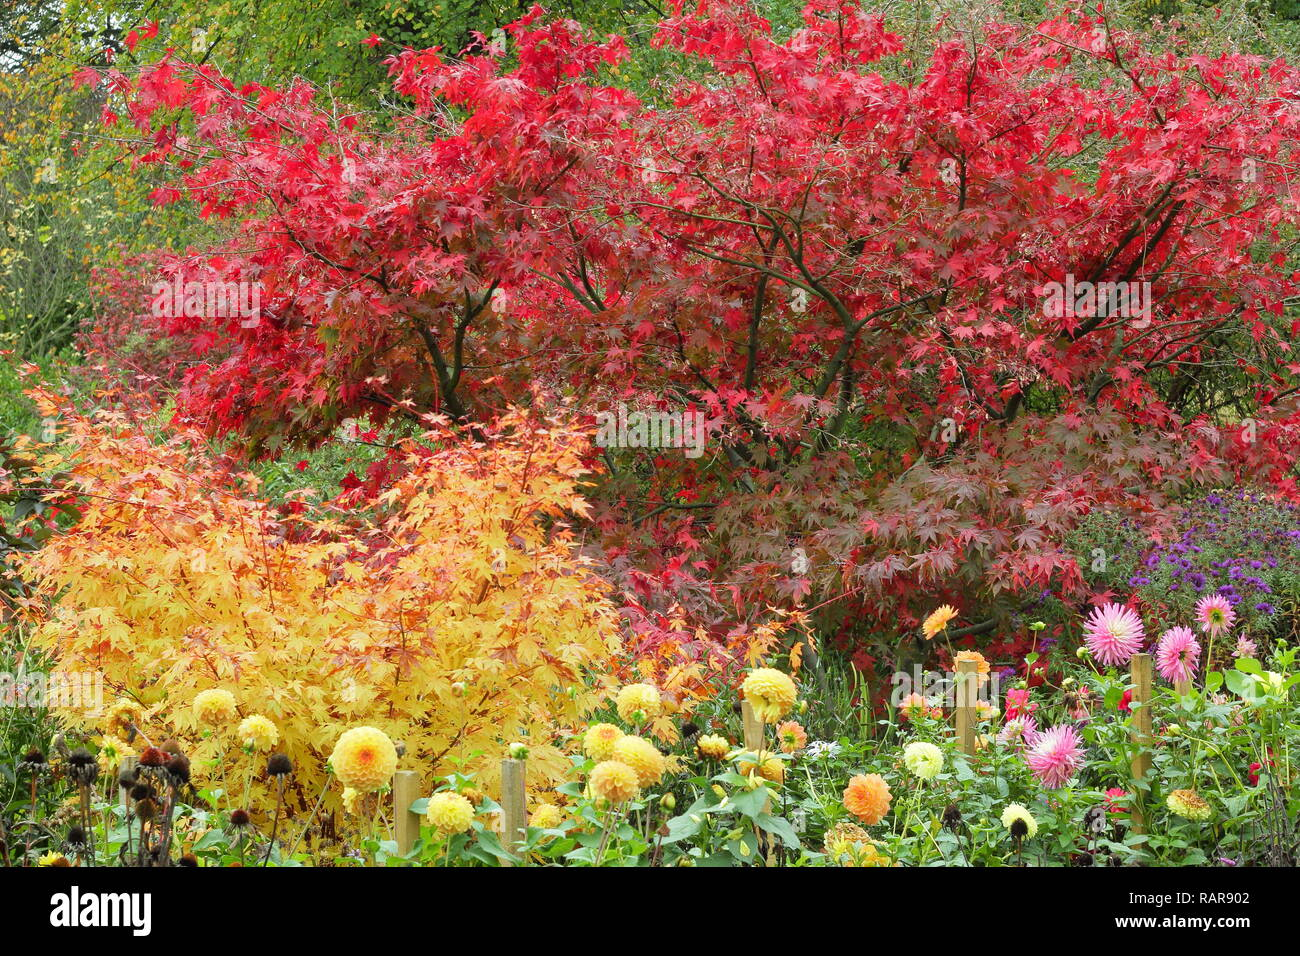 Vibrant Autumn Foliage Of Acers In An English Garden Pictured Red